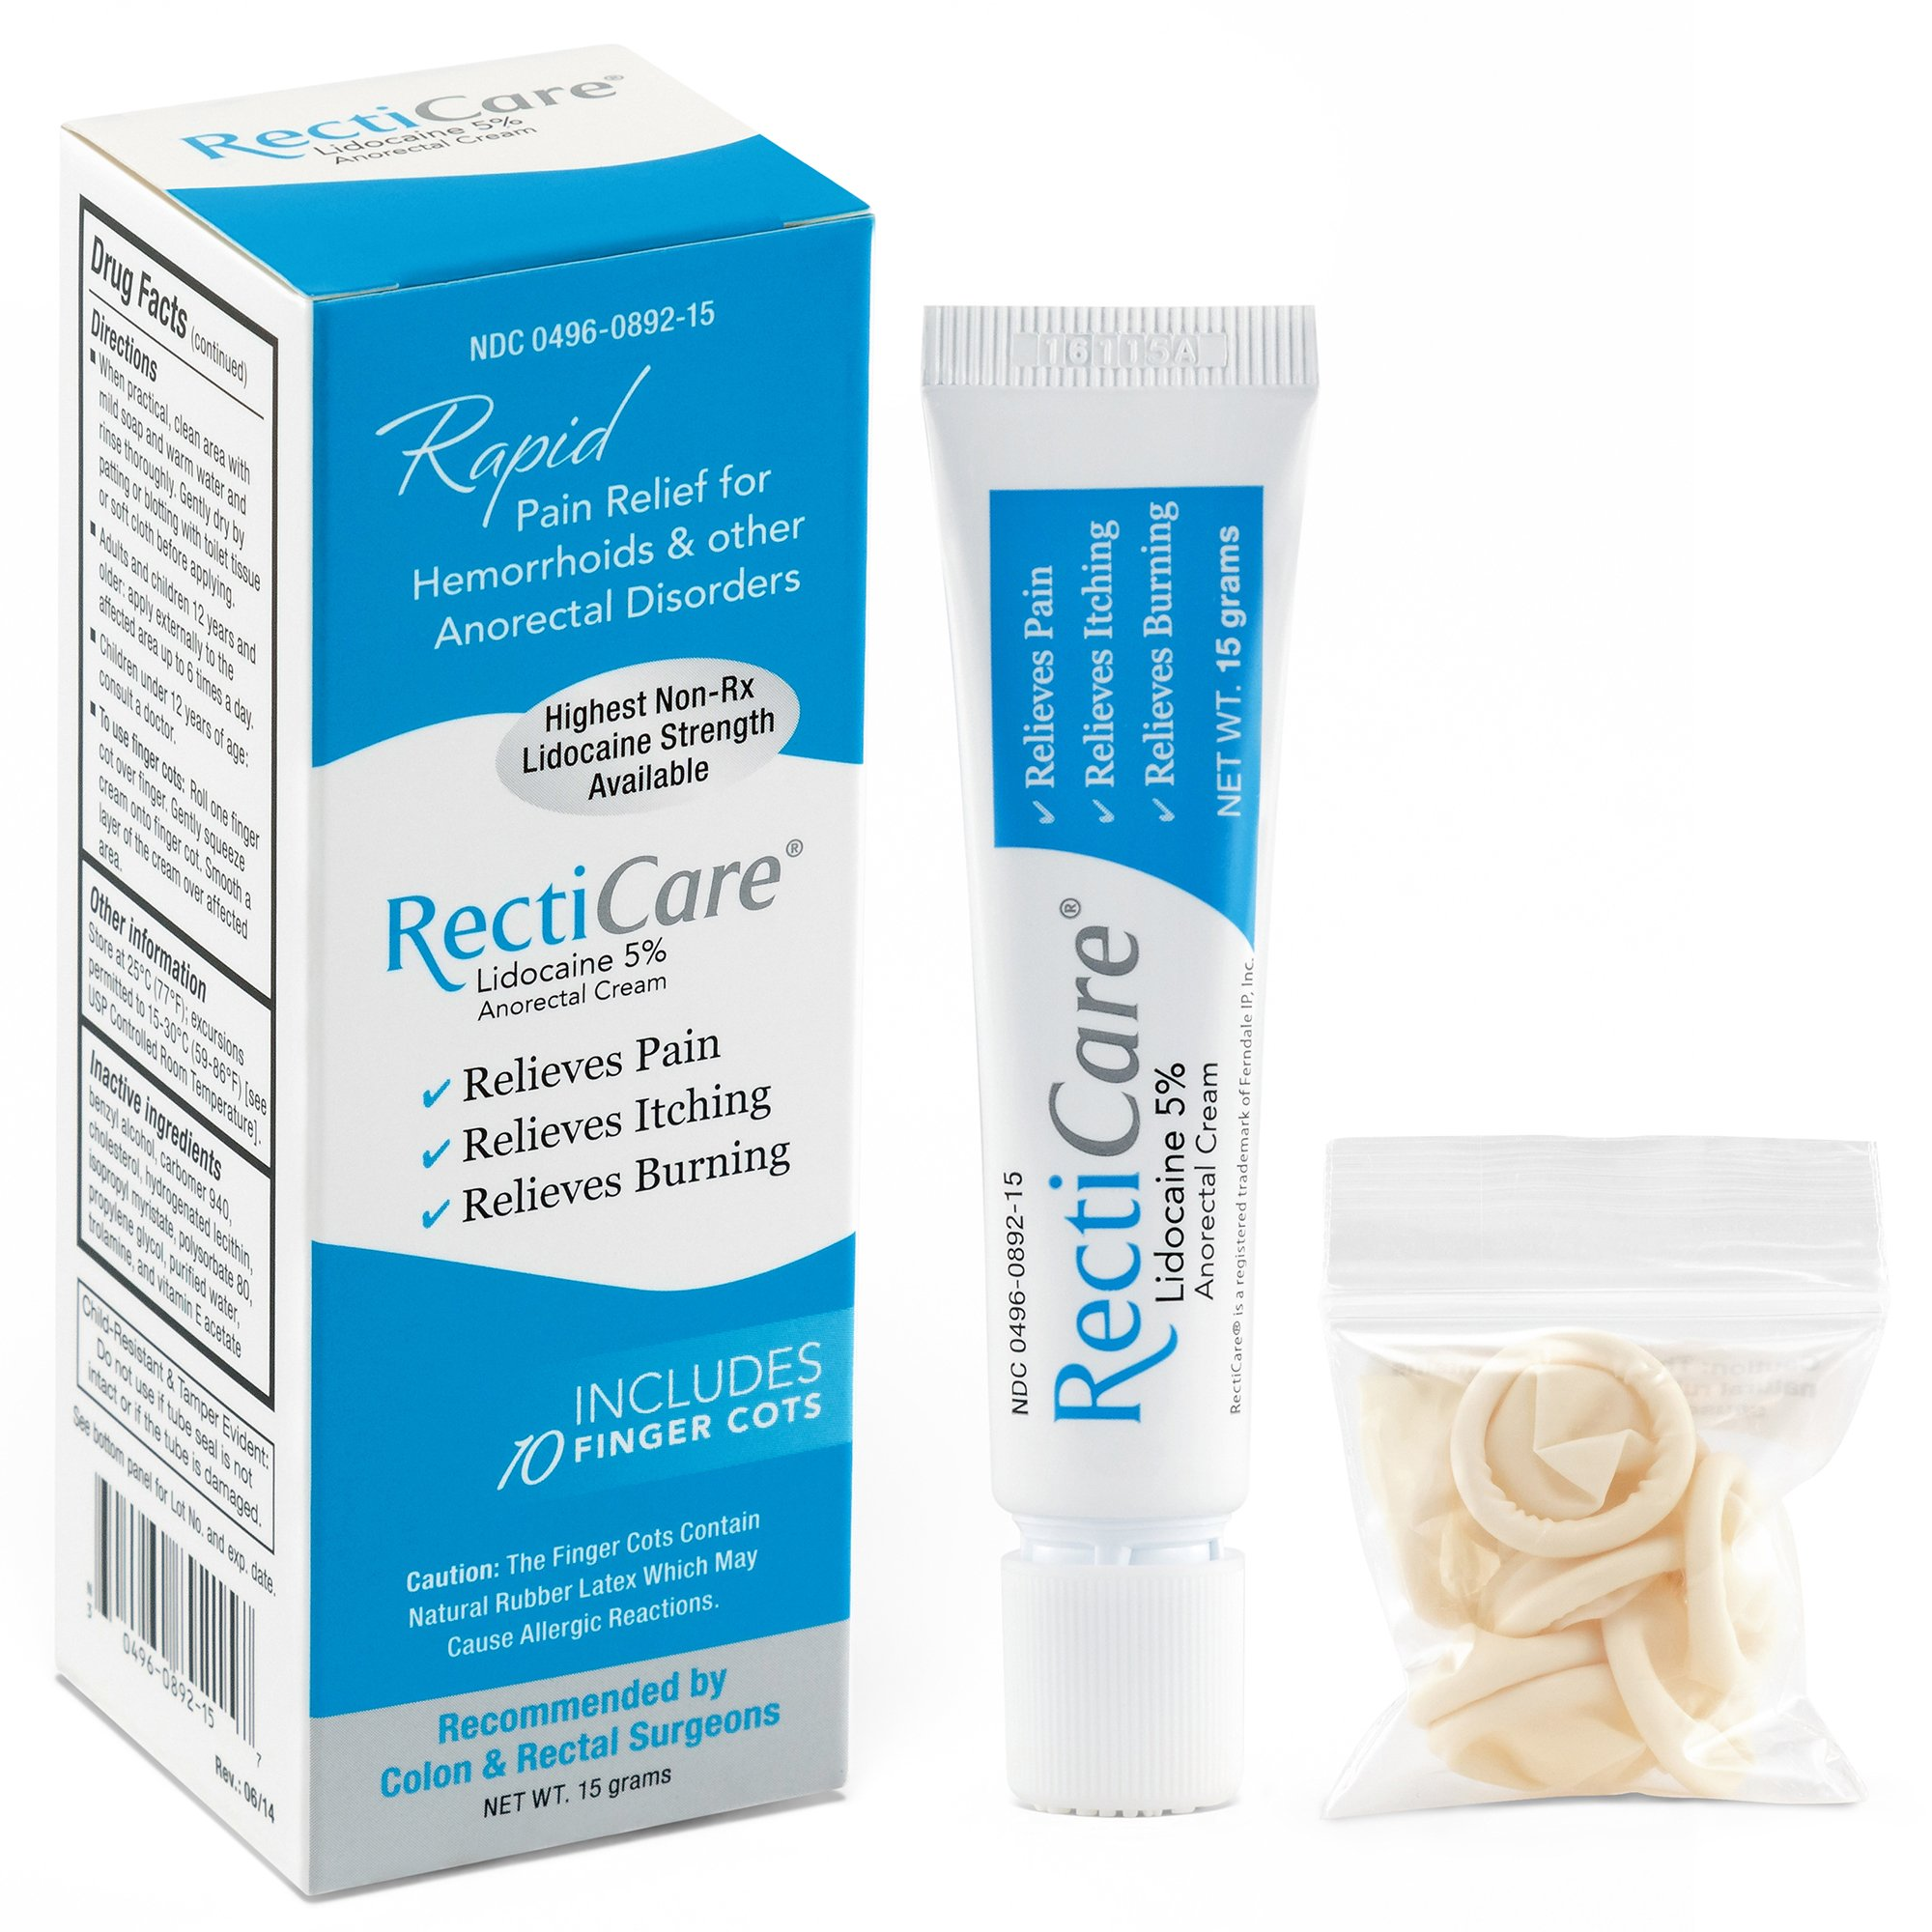 RectiCare Anorectal Lidocaine 5% Cream: Treatment for Hemorrhoids & Other Anorectal Disorders - 15g Tube